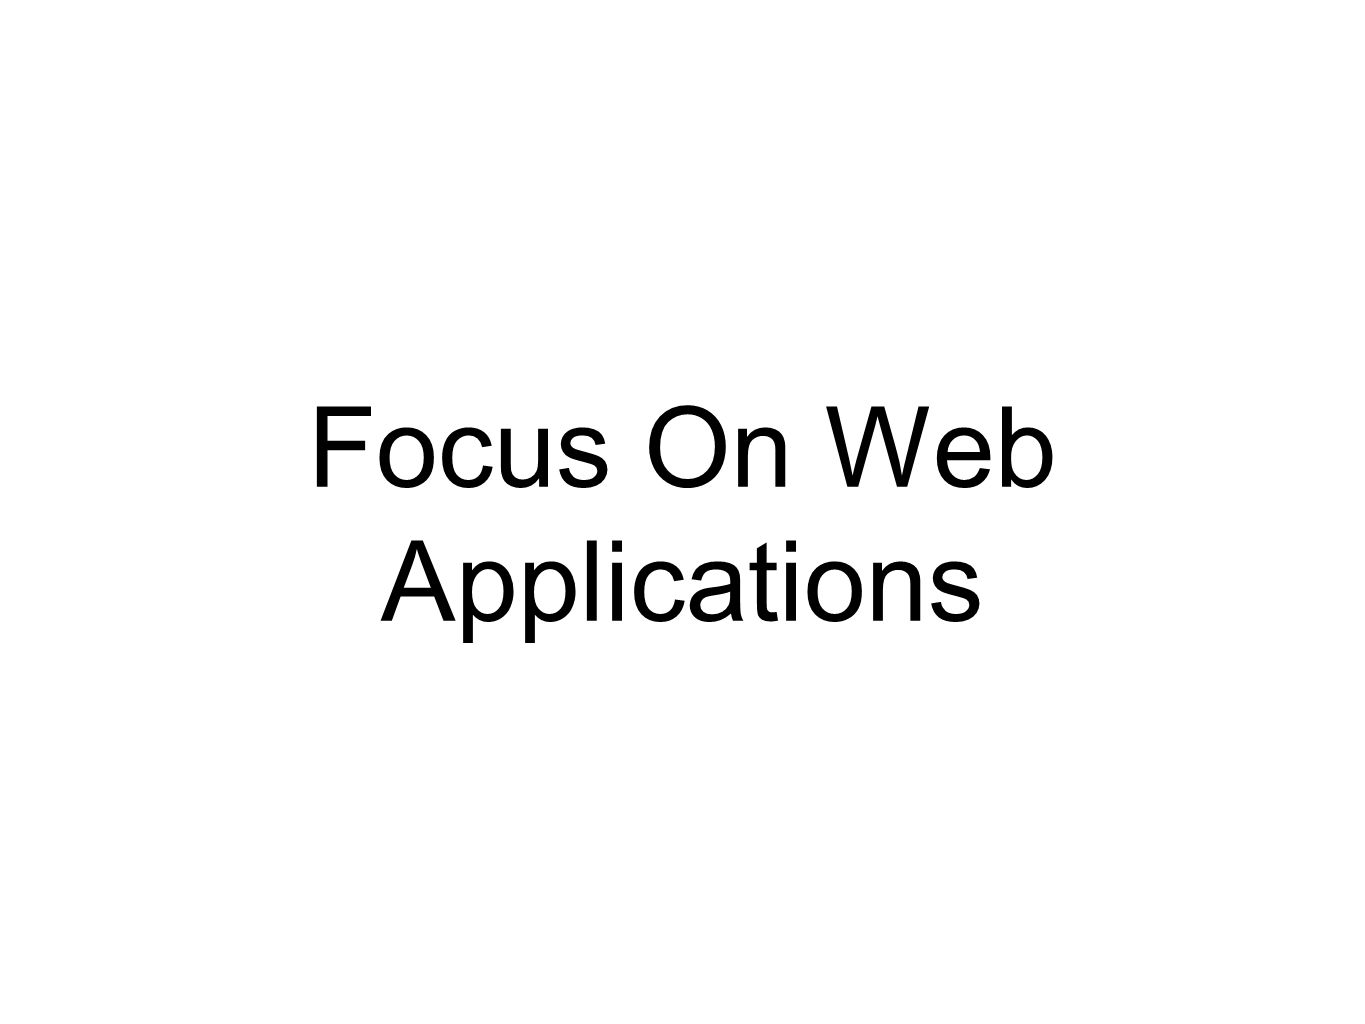 Focus On Web Applications